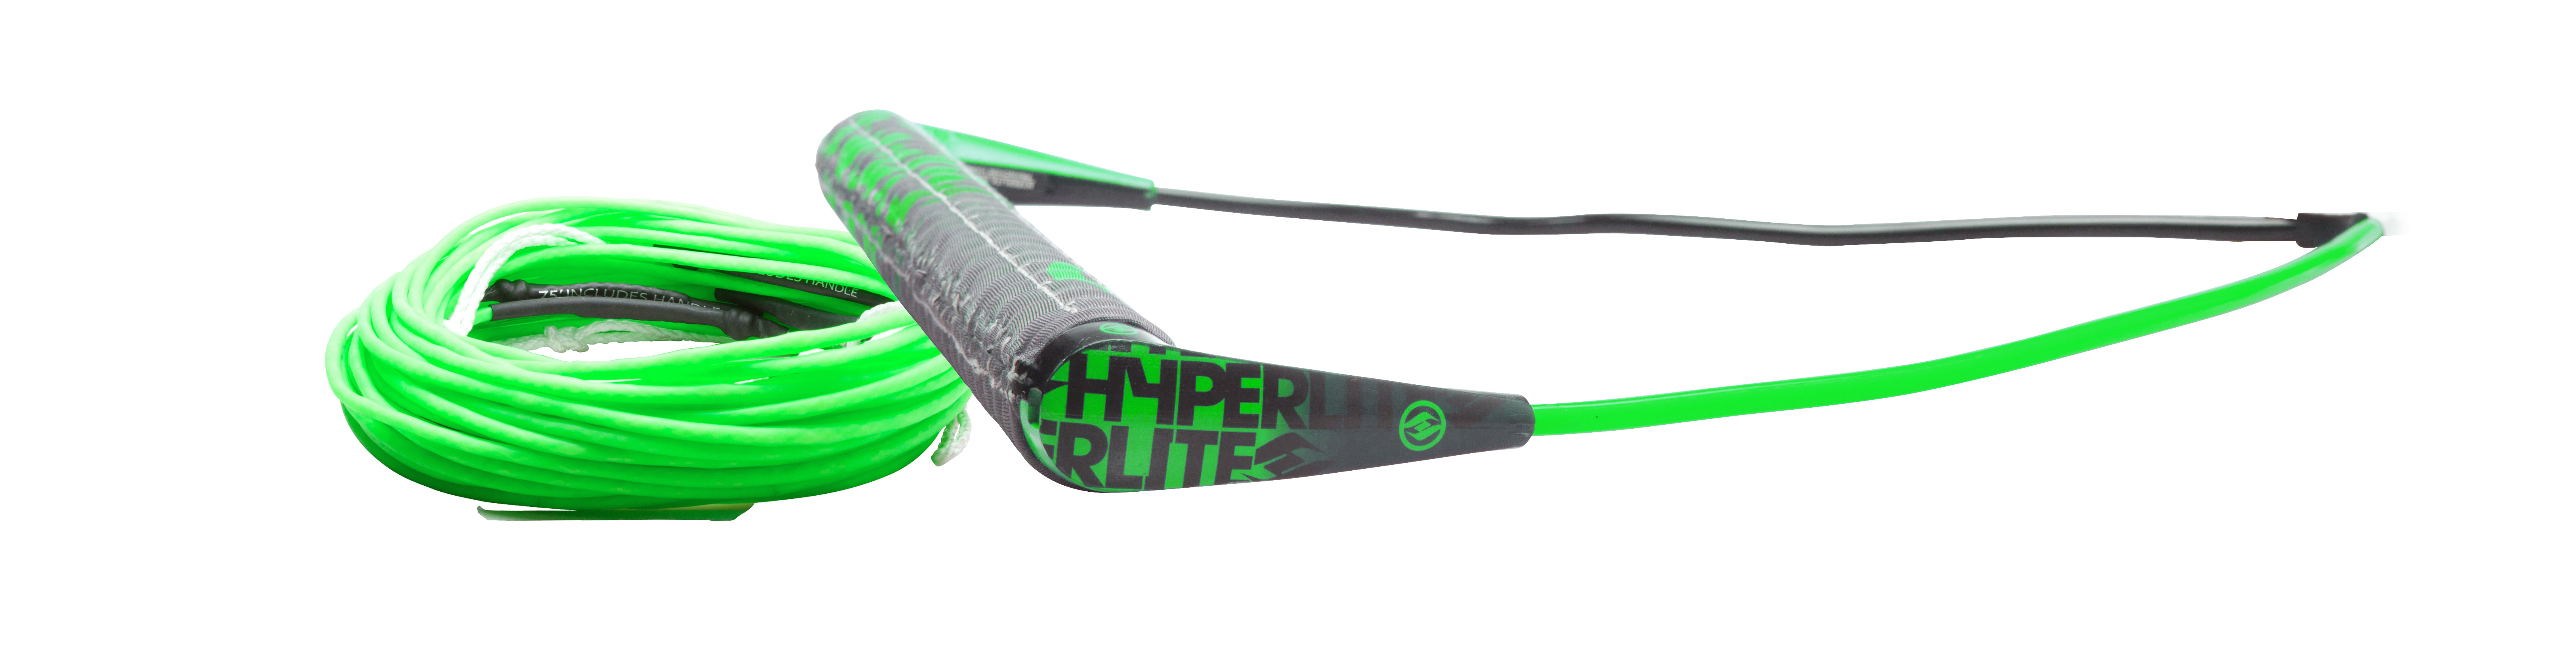 TEAM HANDLE W/A-MAINLINE GREEN HYPERLITE 2017